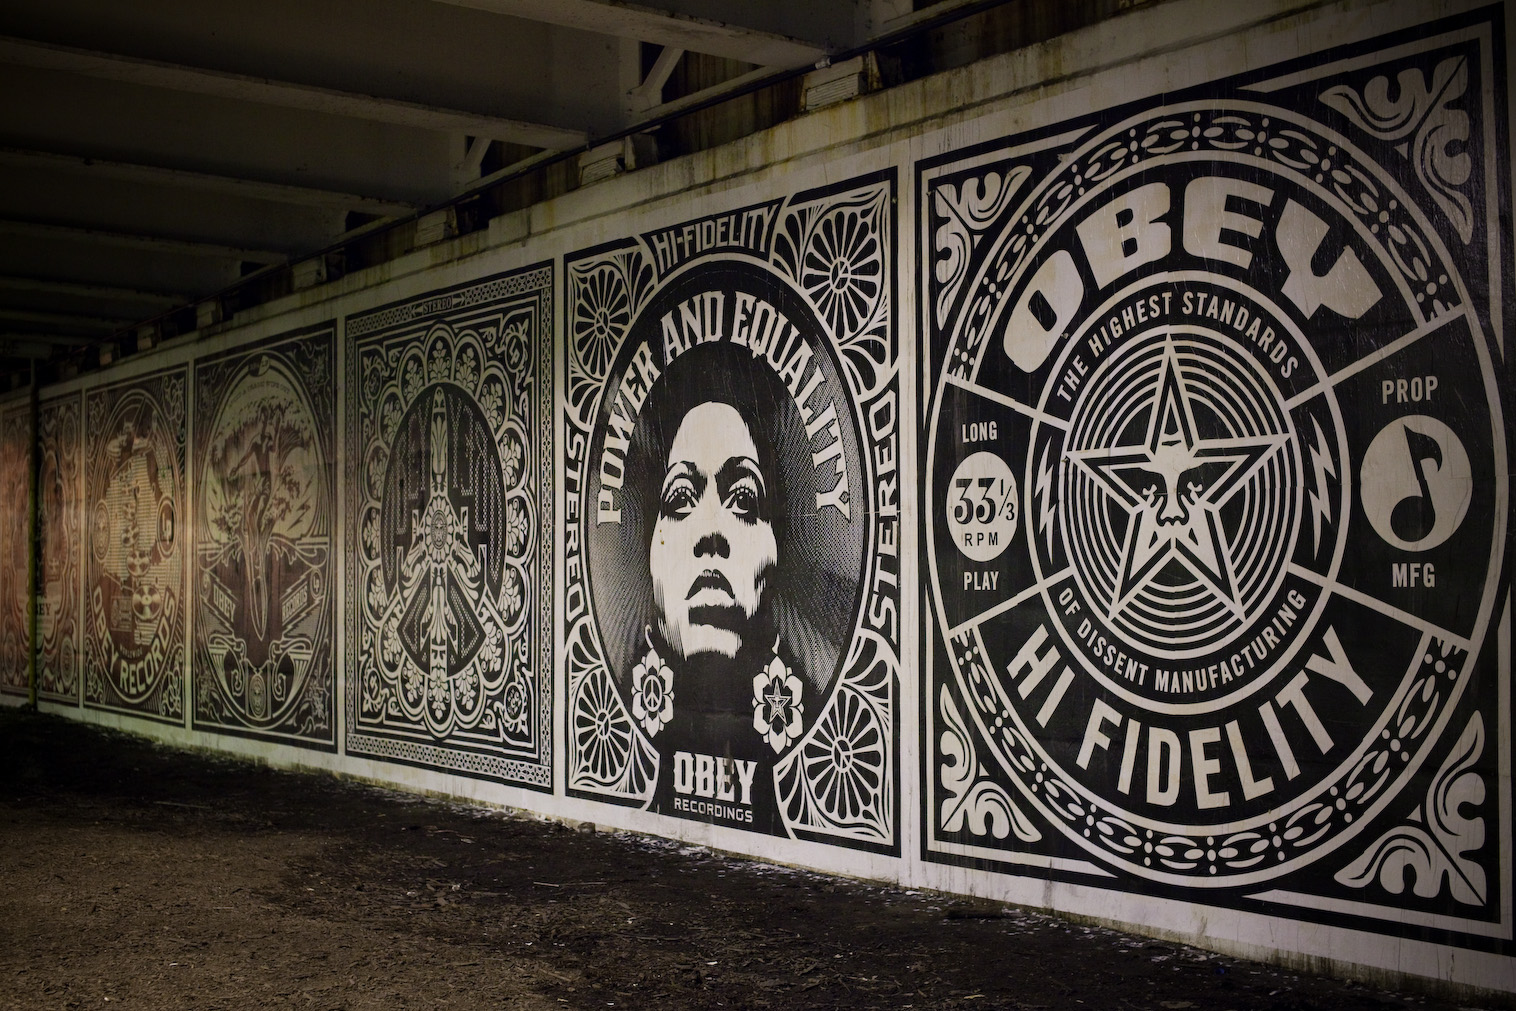 Obey Art Wallpaper Hd Obey revolutions murals in 1516x1011